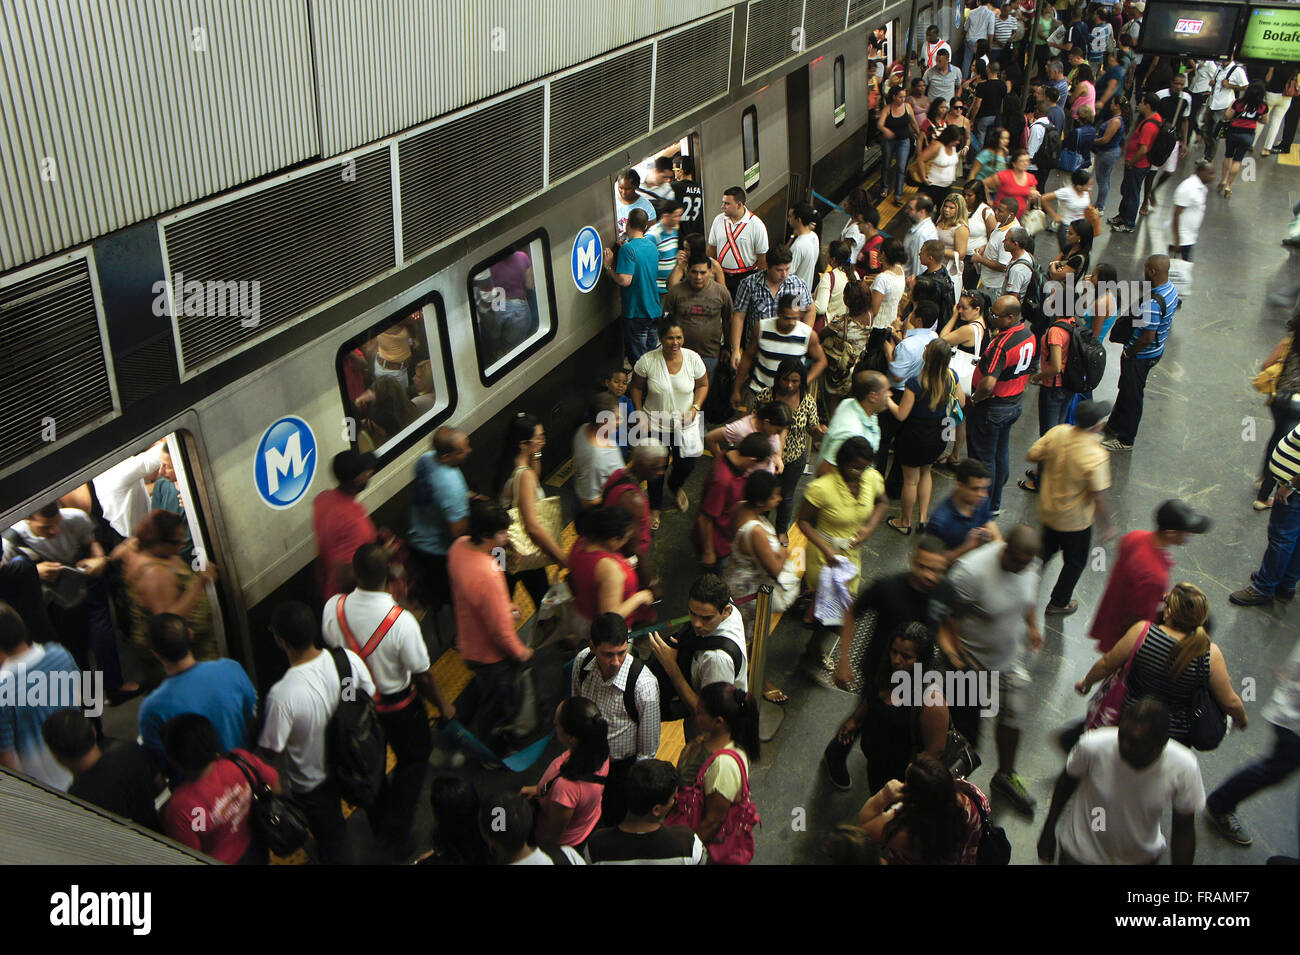 Embarkation and disembarkation of passengers on the subway at the station of the Central Brazil - Stock Image